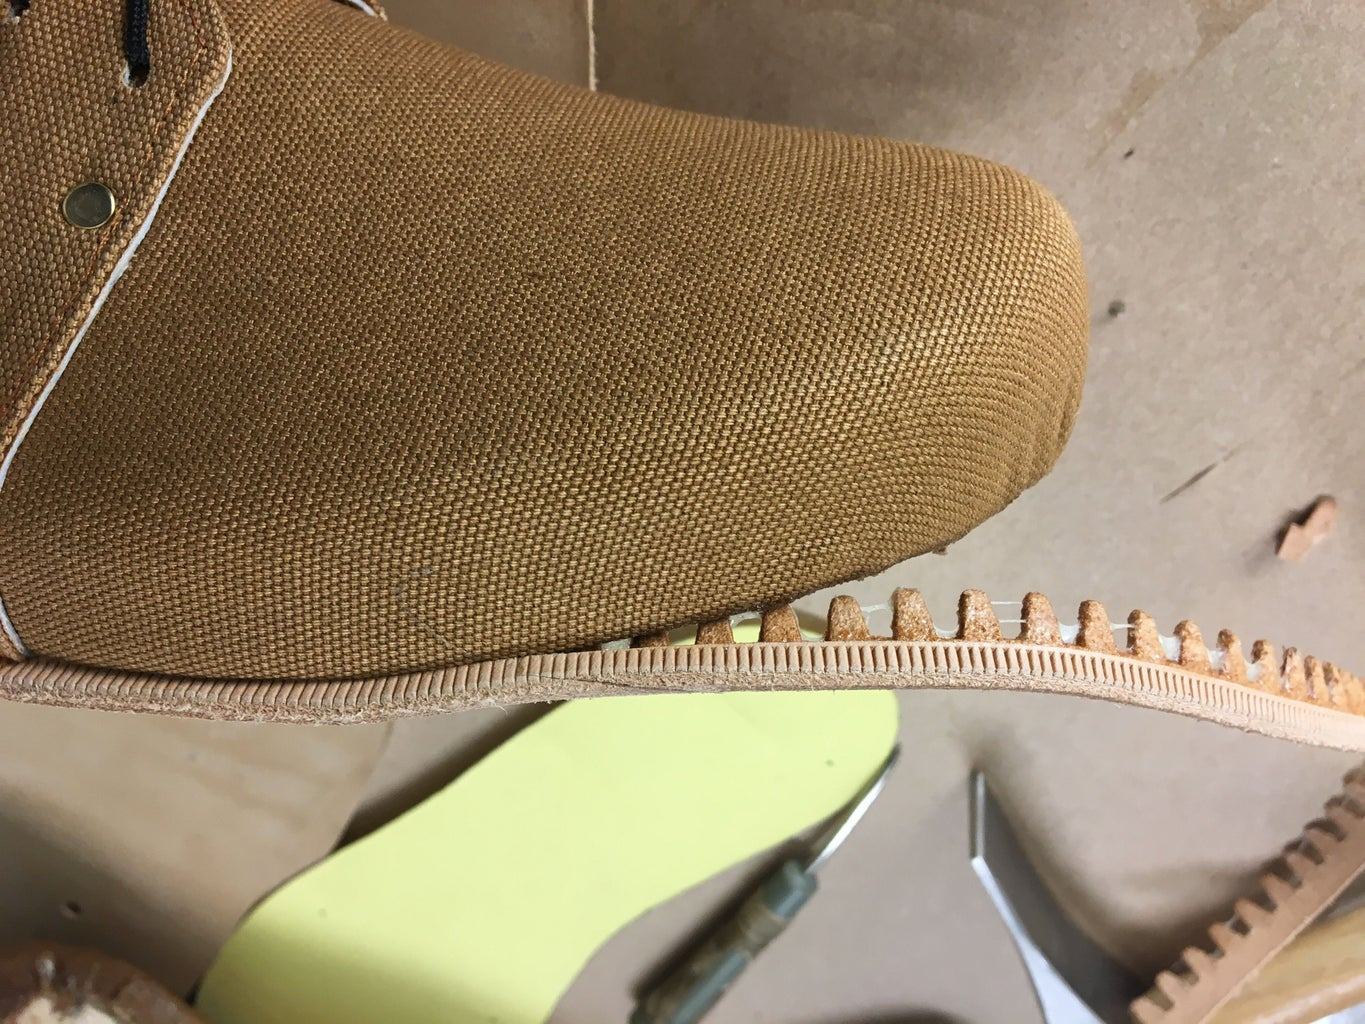 Attaching the Sole